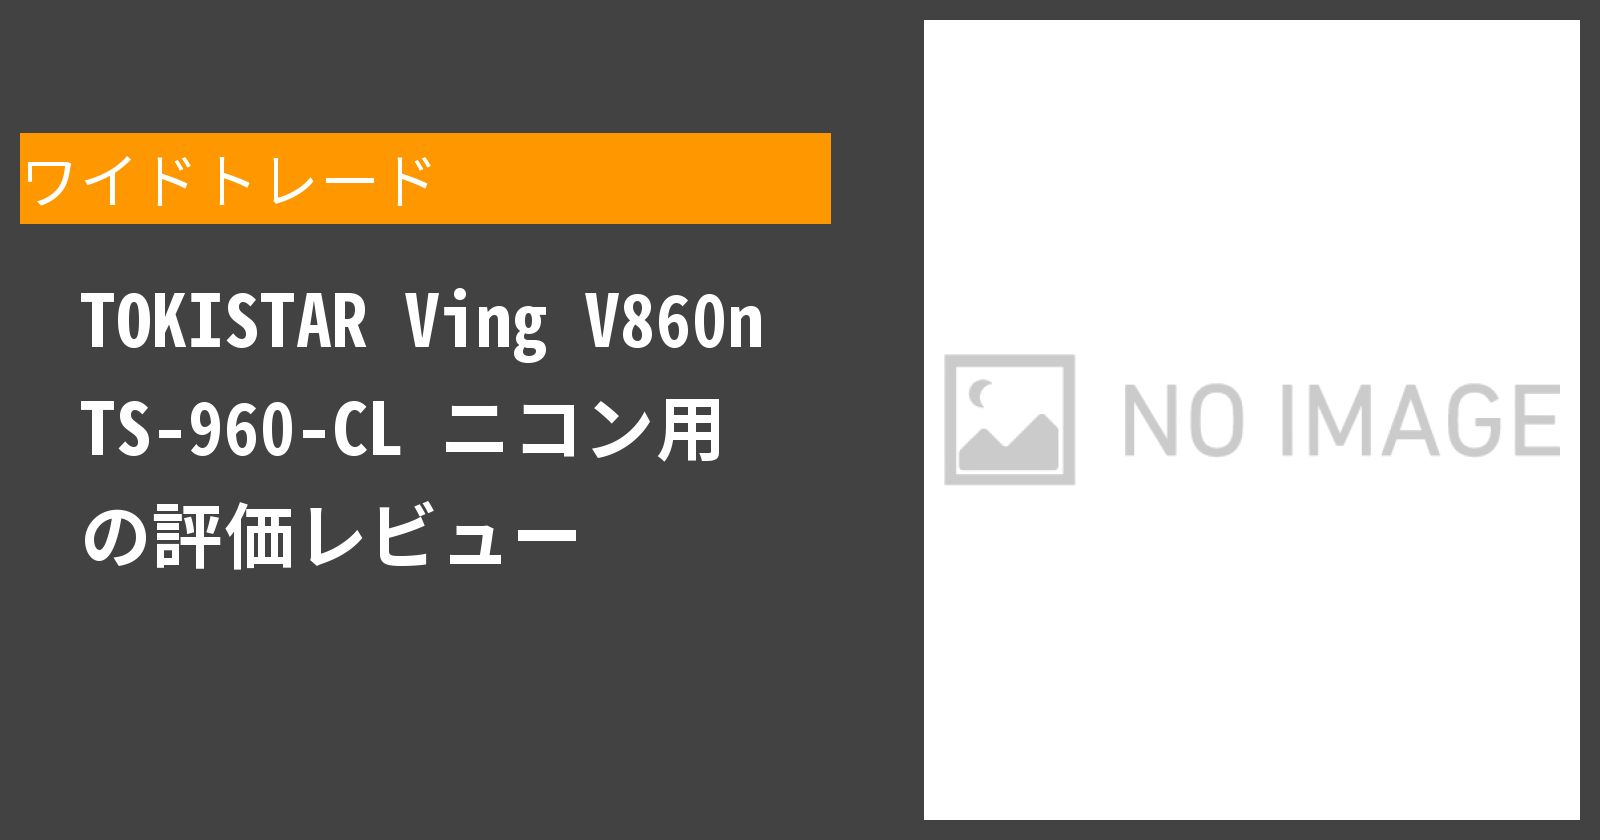 TOKISTAR Ving V860n TS-960-CL ニコン用を徹底評価